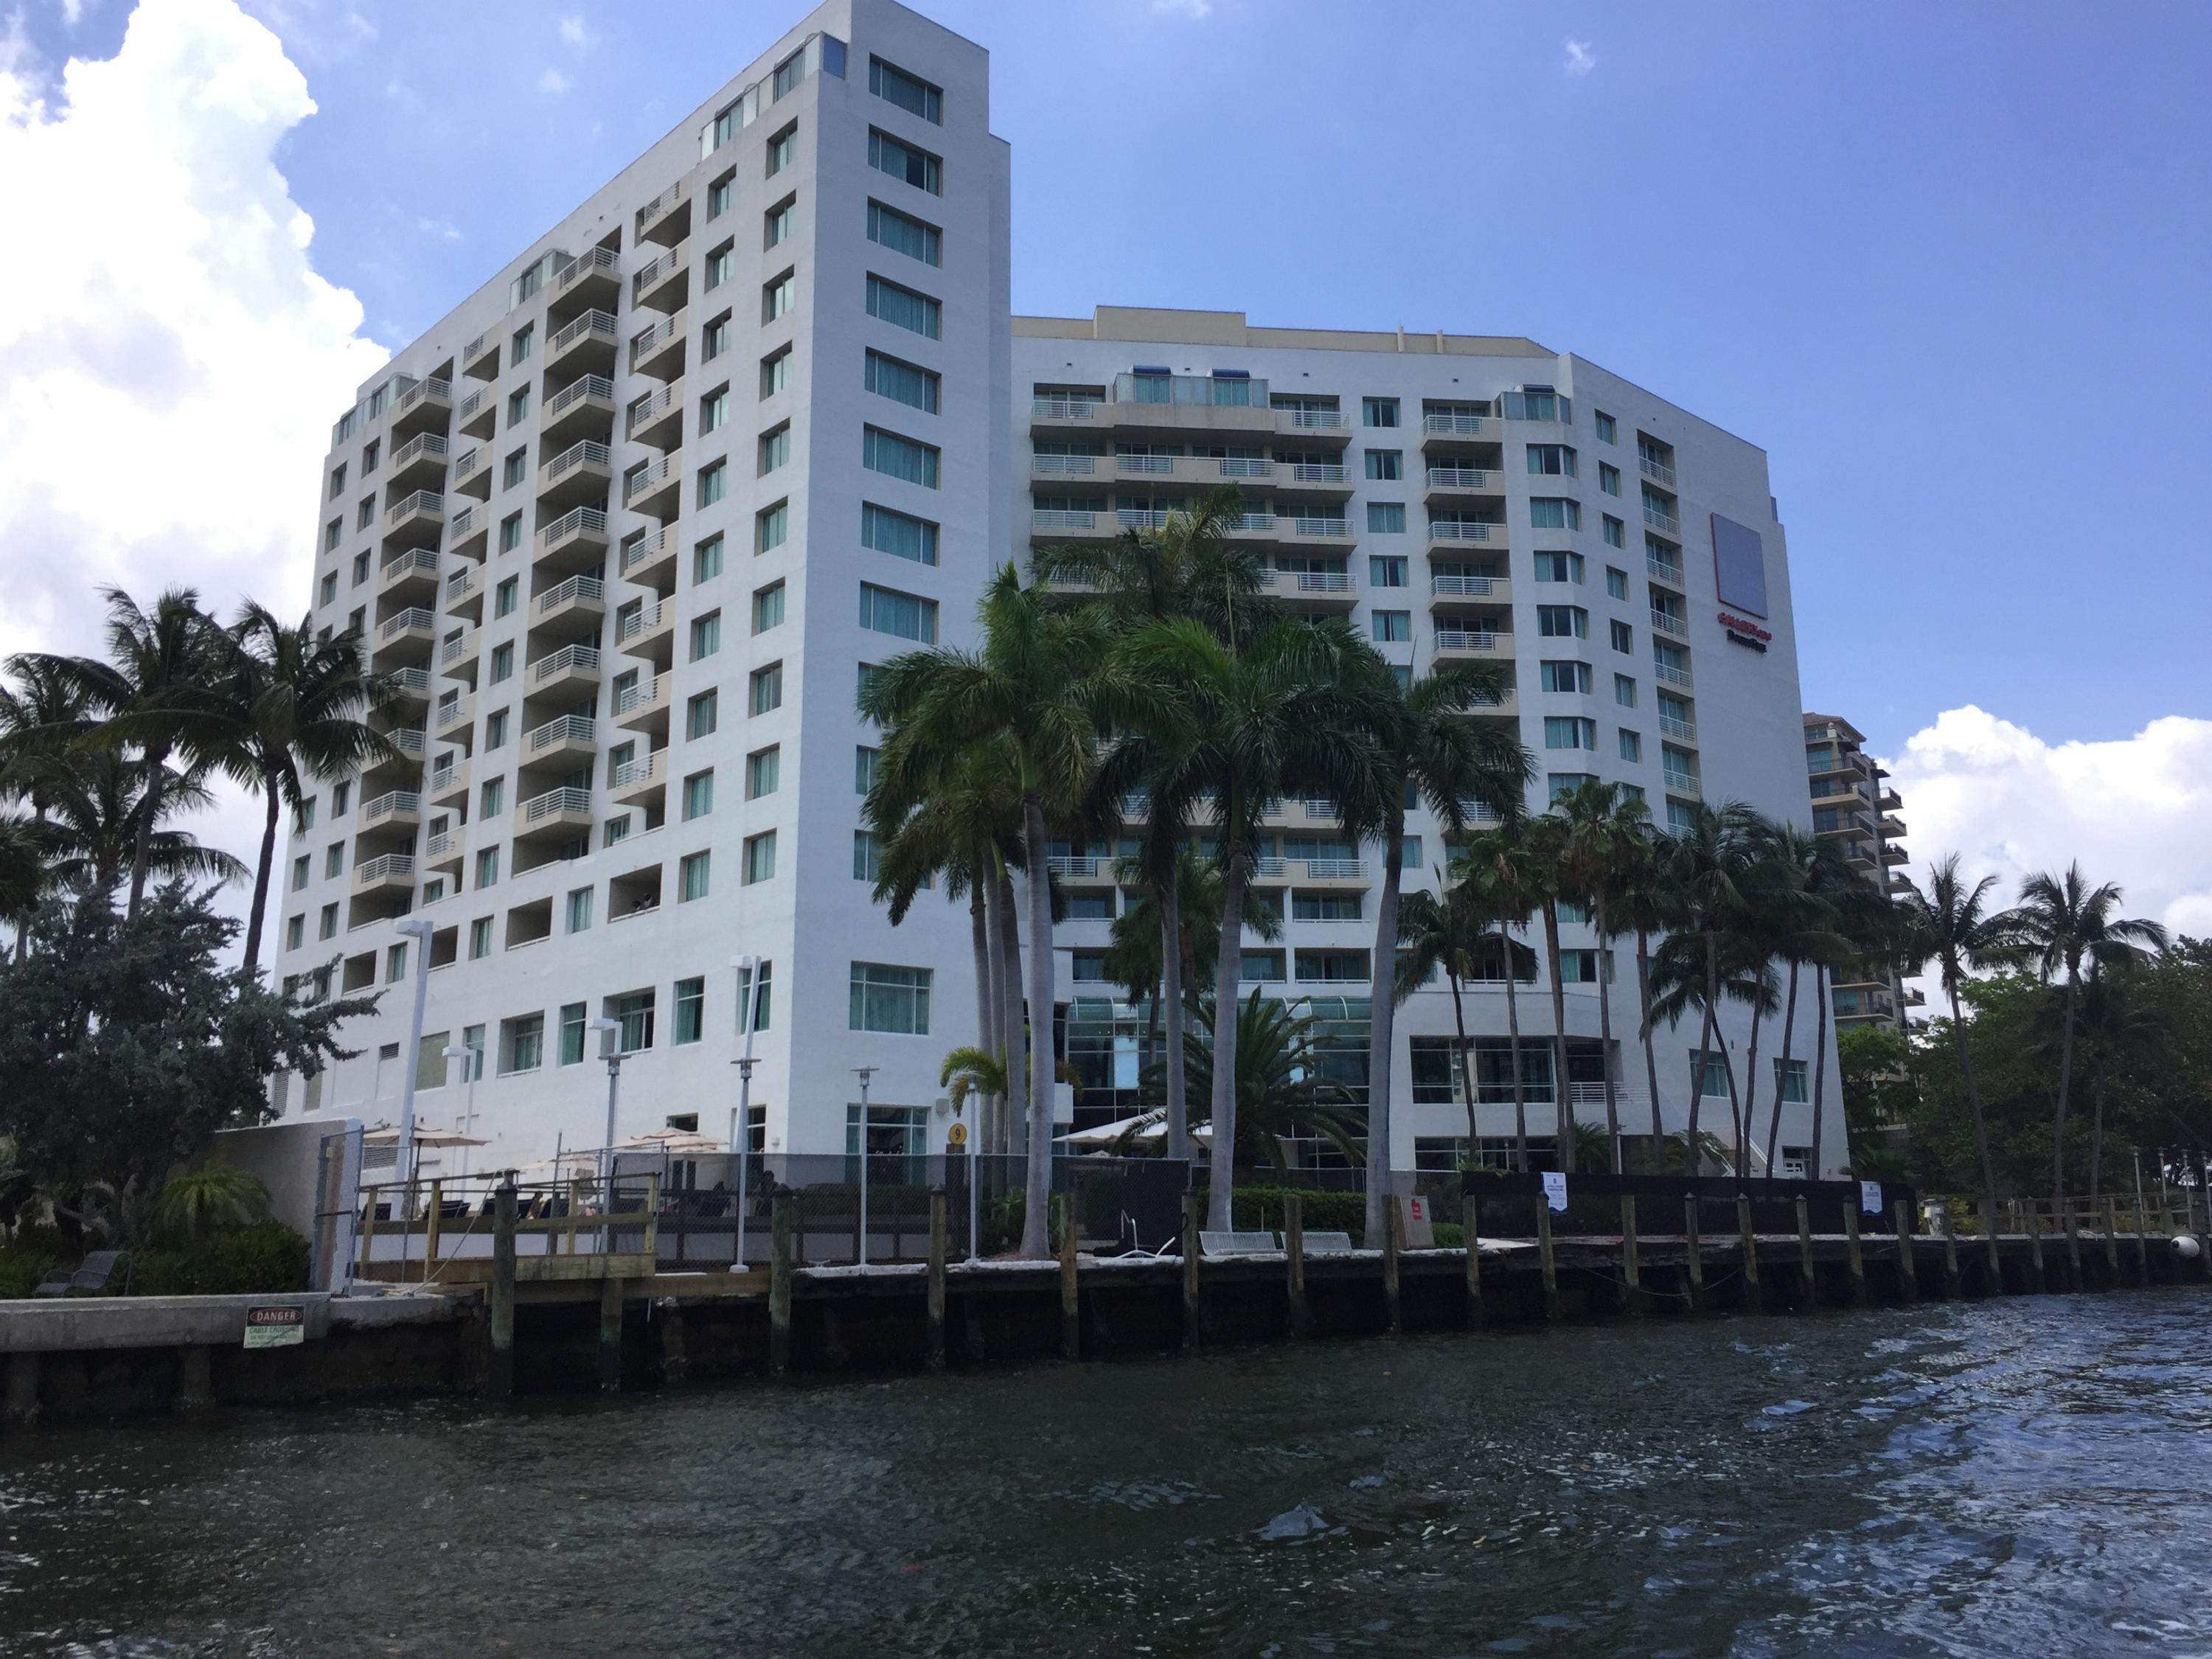 2670 Sunrise Boulevard, Fort Lauderdale, Florida 33304, 1 Bedroom Bedrooms, ,1 BathroomBathrooms,Condo/Coop,For Sale,Sunrise,5,RX-10385804